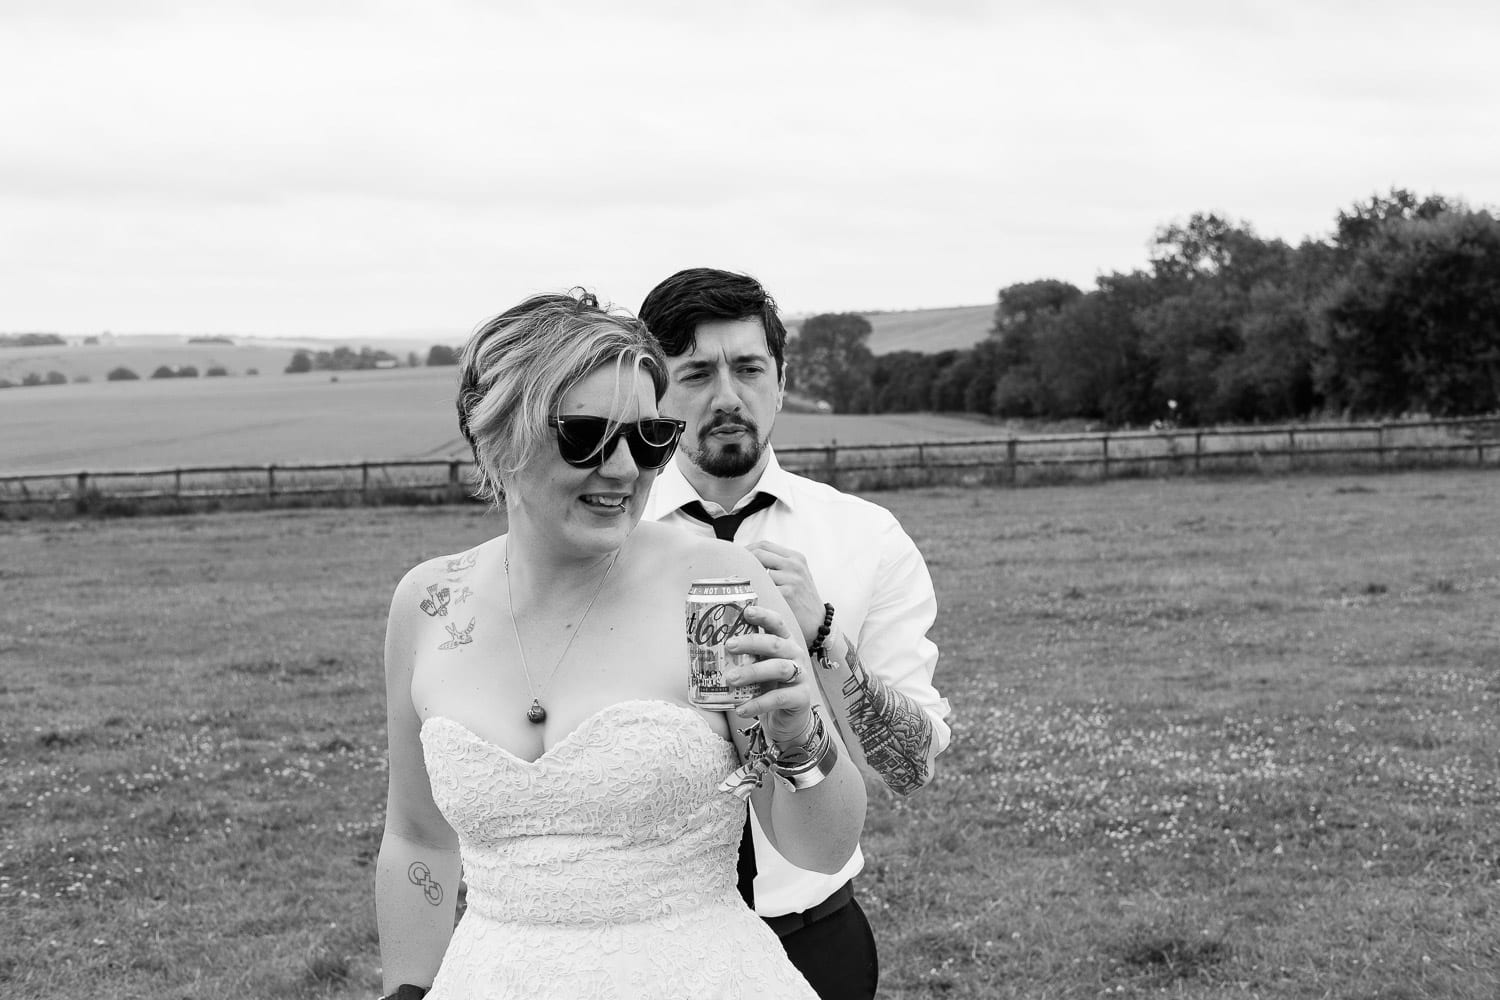 The bride and groom in a field